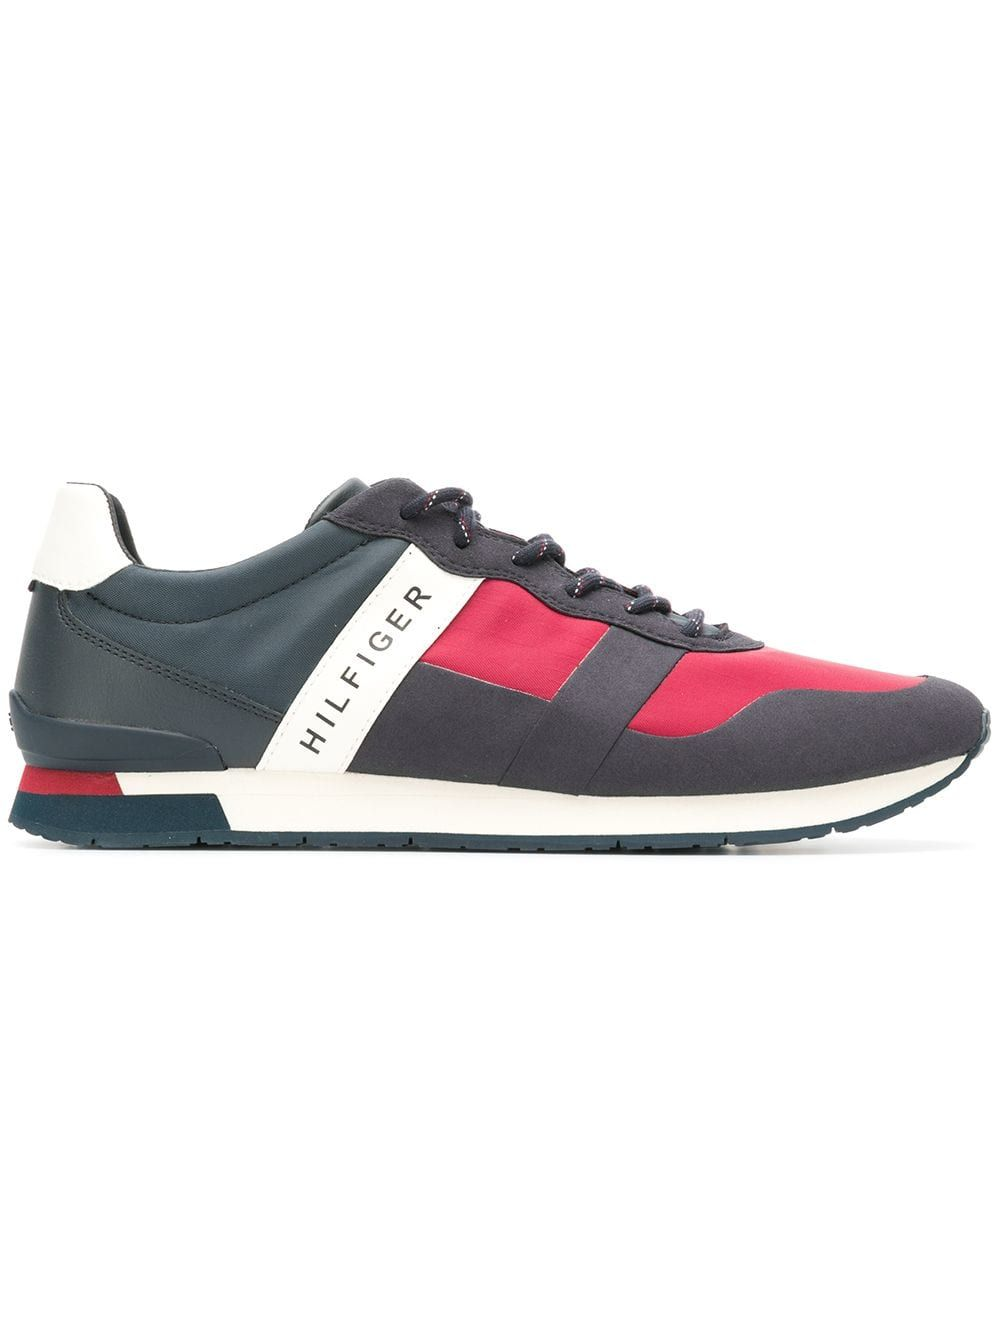 86f70c555083bb TOMMY HILFIGER TOMMY HILFIGER LOW TOP LOGO SNEAKERS - BLUE.  tommyhilfiger   shoes